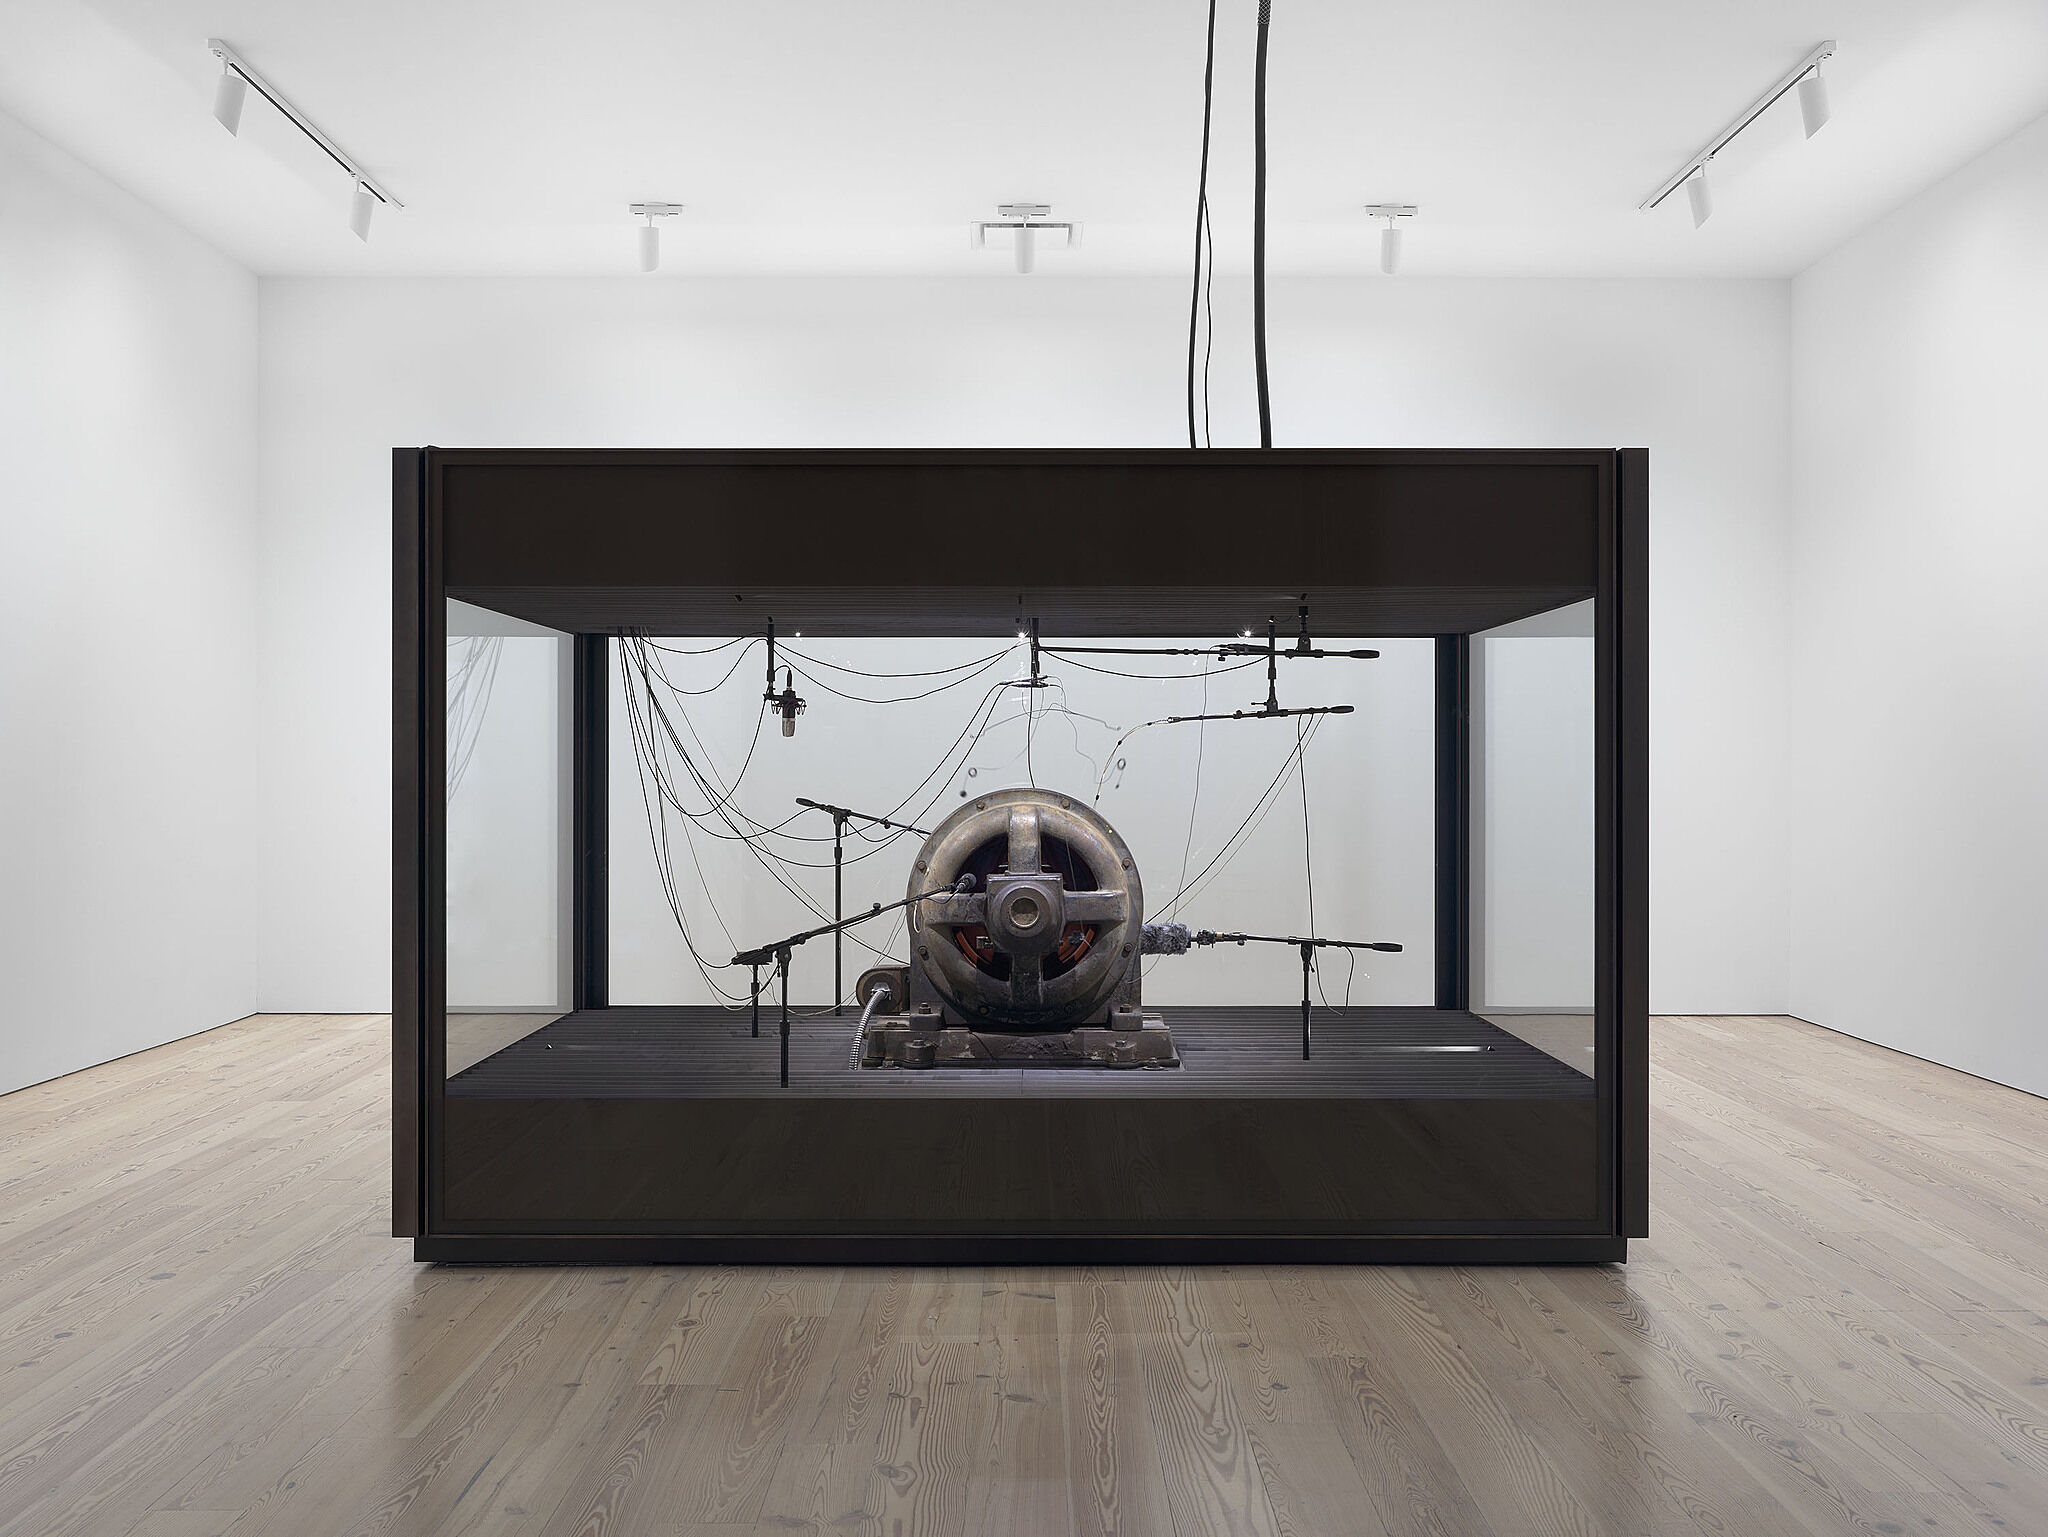 Installation view of Kevin Beasley: A view of a landscape, with a cotton gin motor inside of a glass chamber.